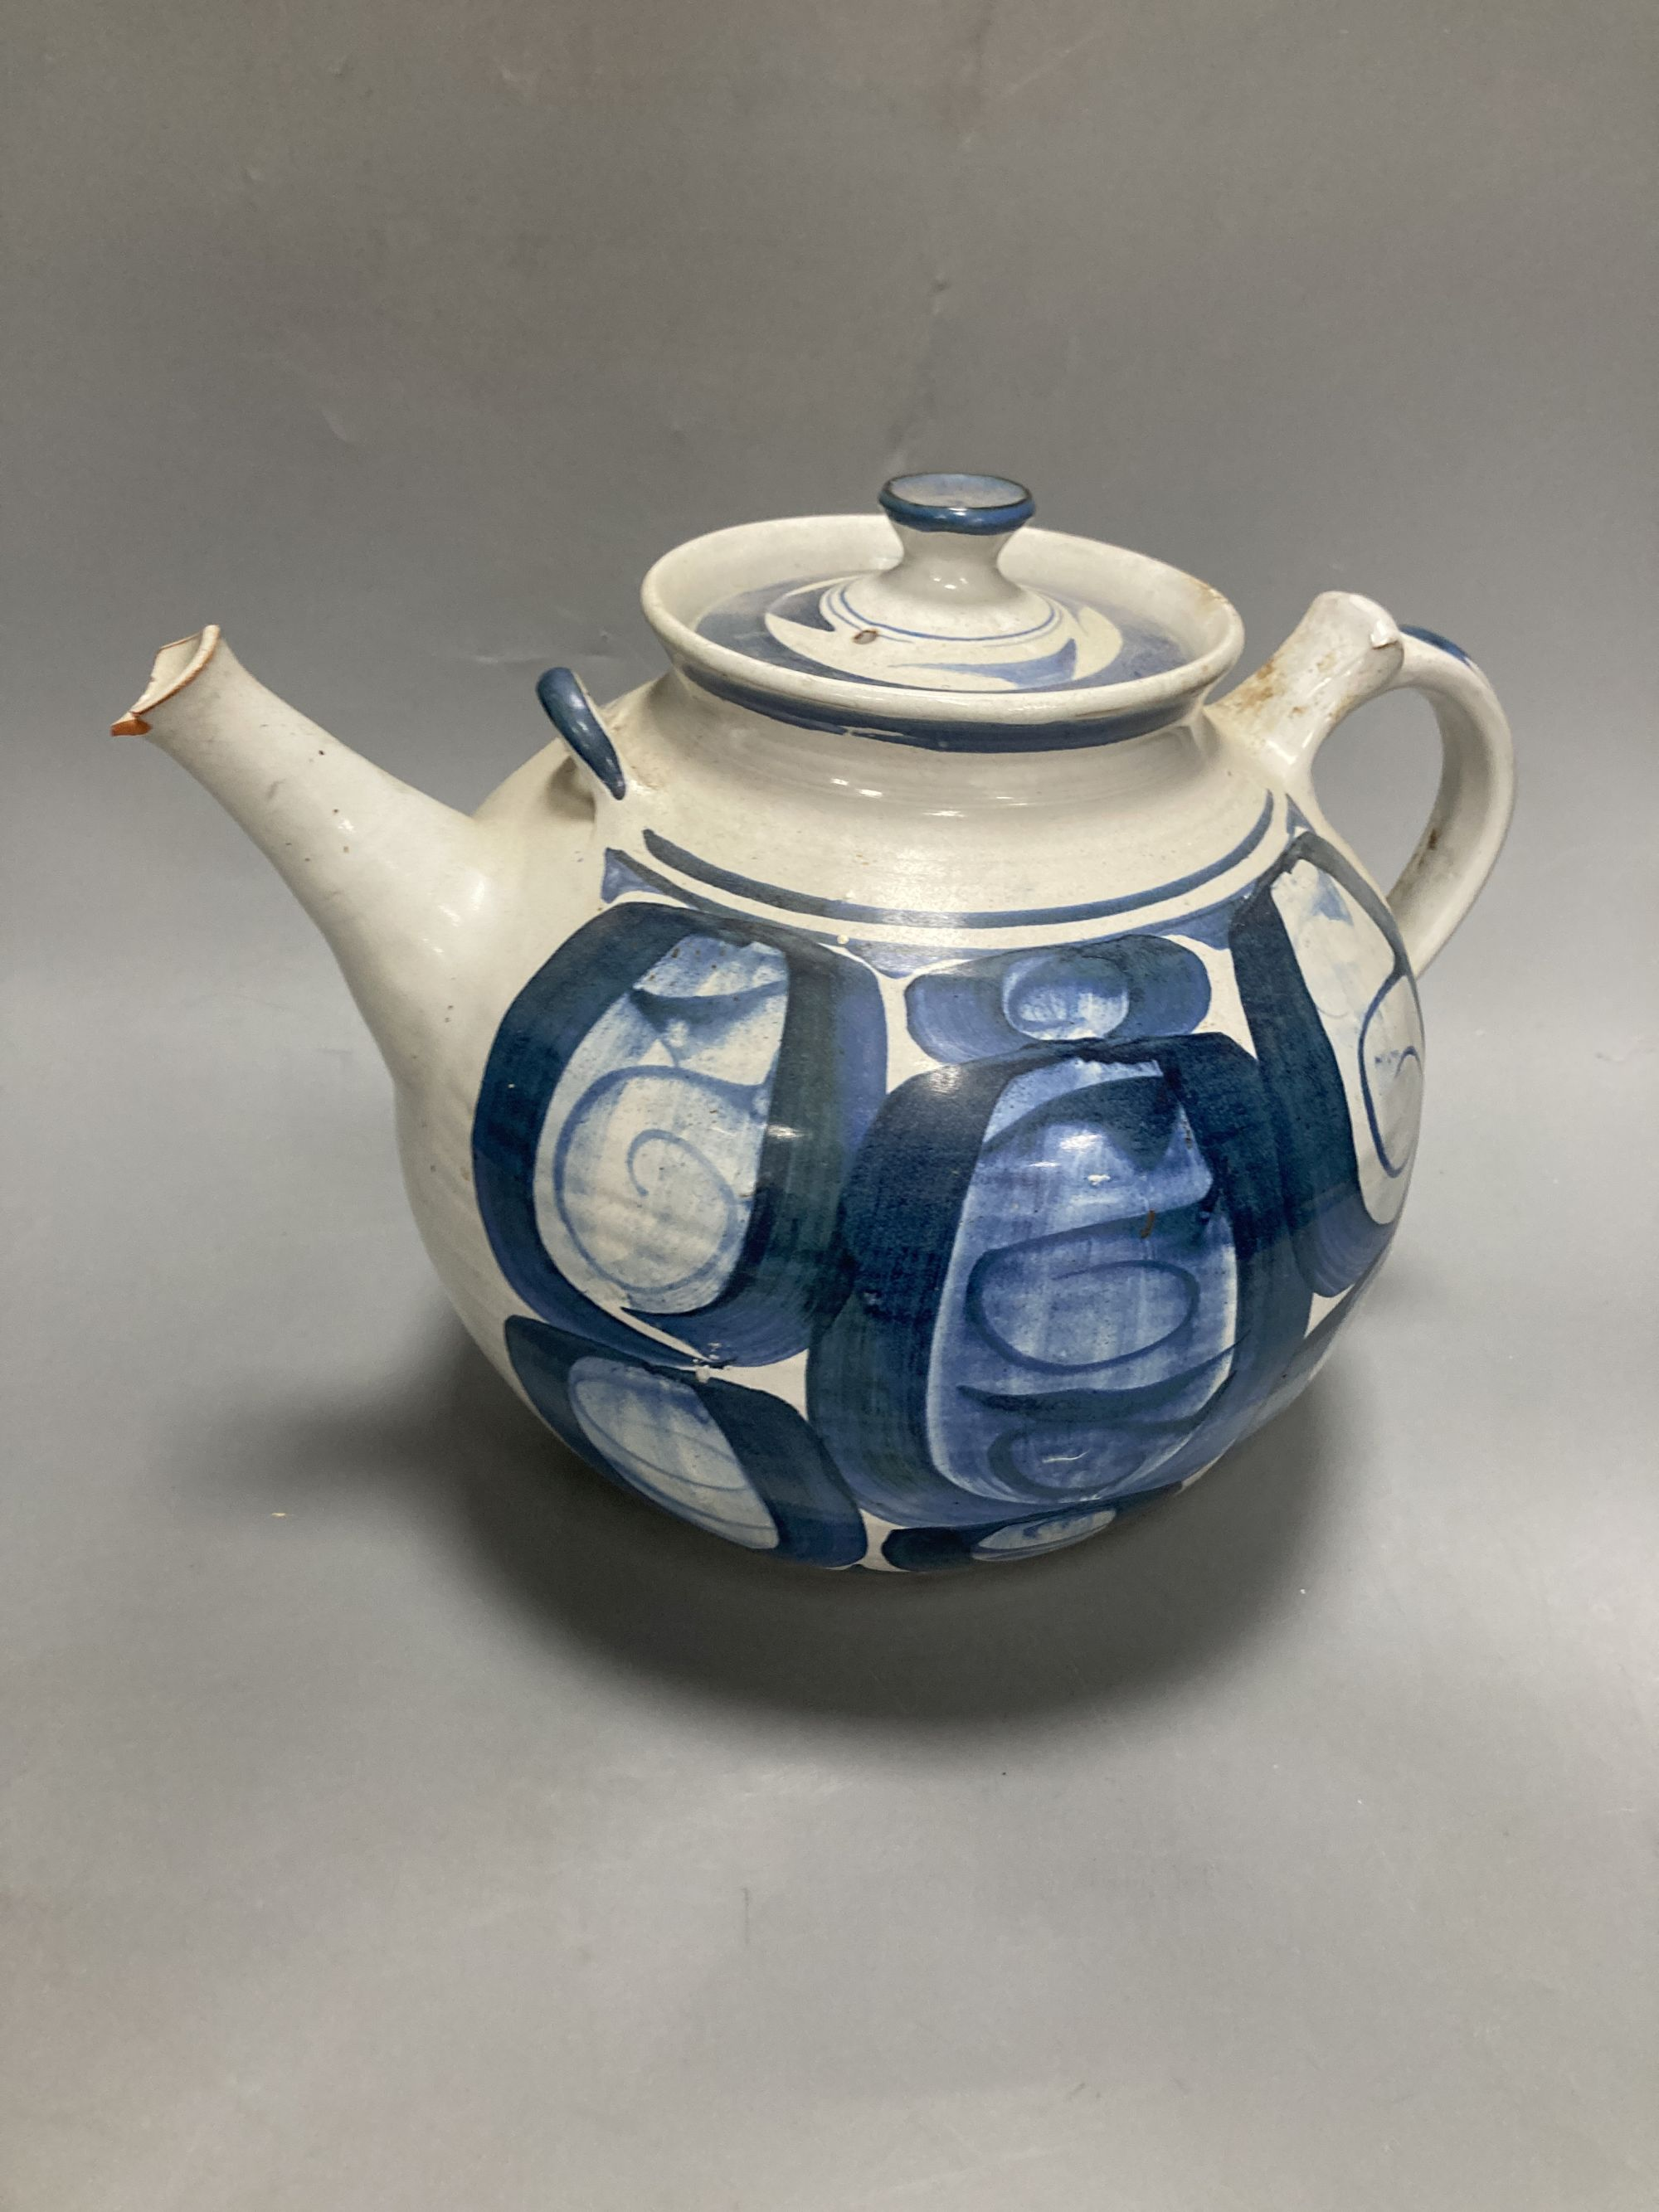 Two Studio pottery teapots, largest 25cm - Image 2 of 4